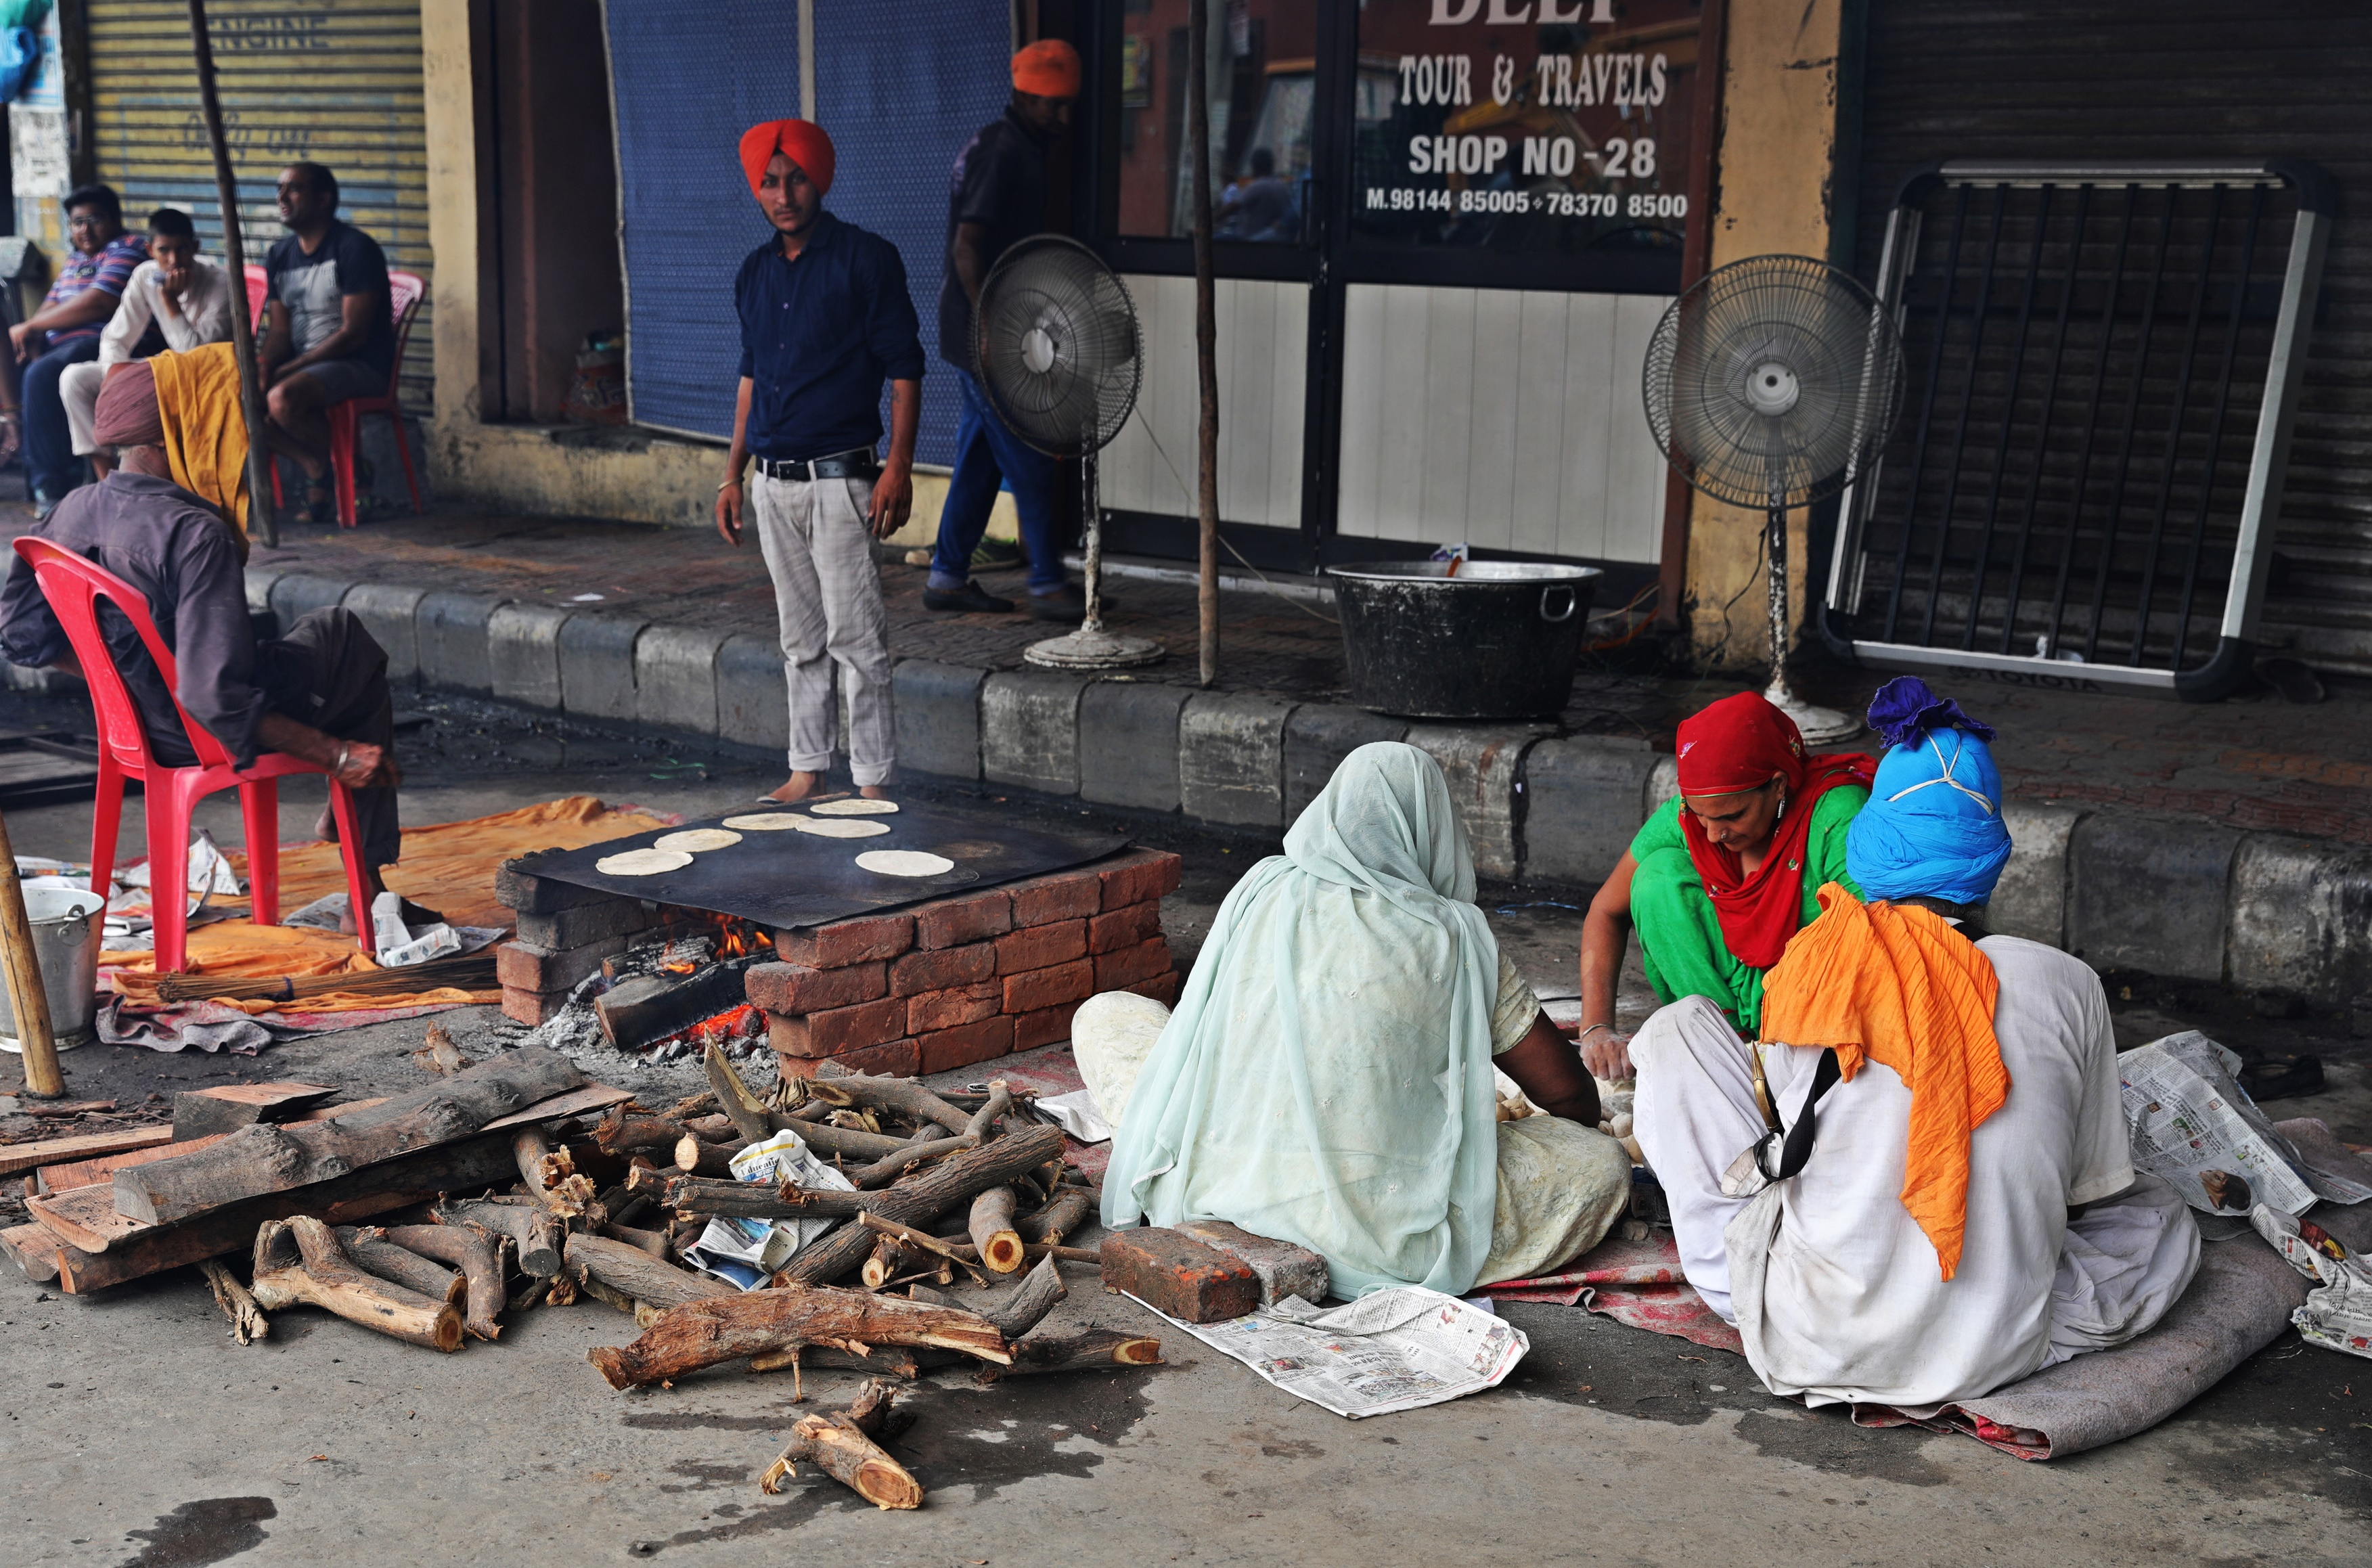 Making chapati on the street in Amritsar